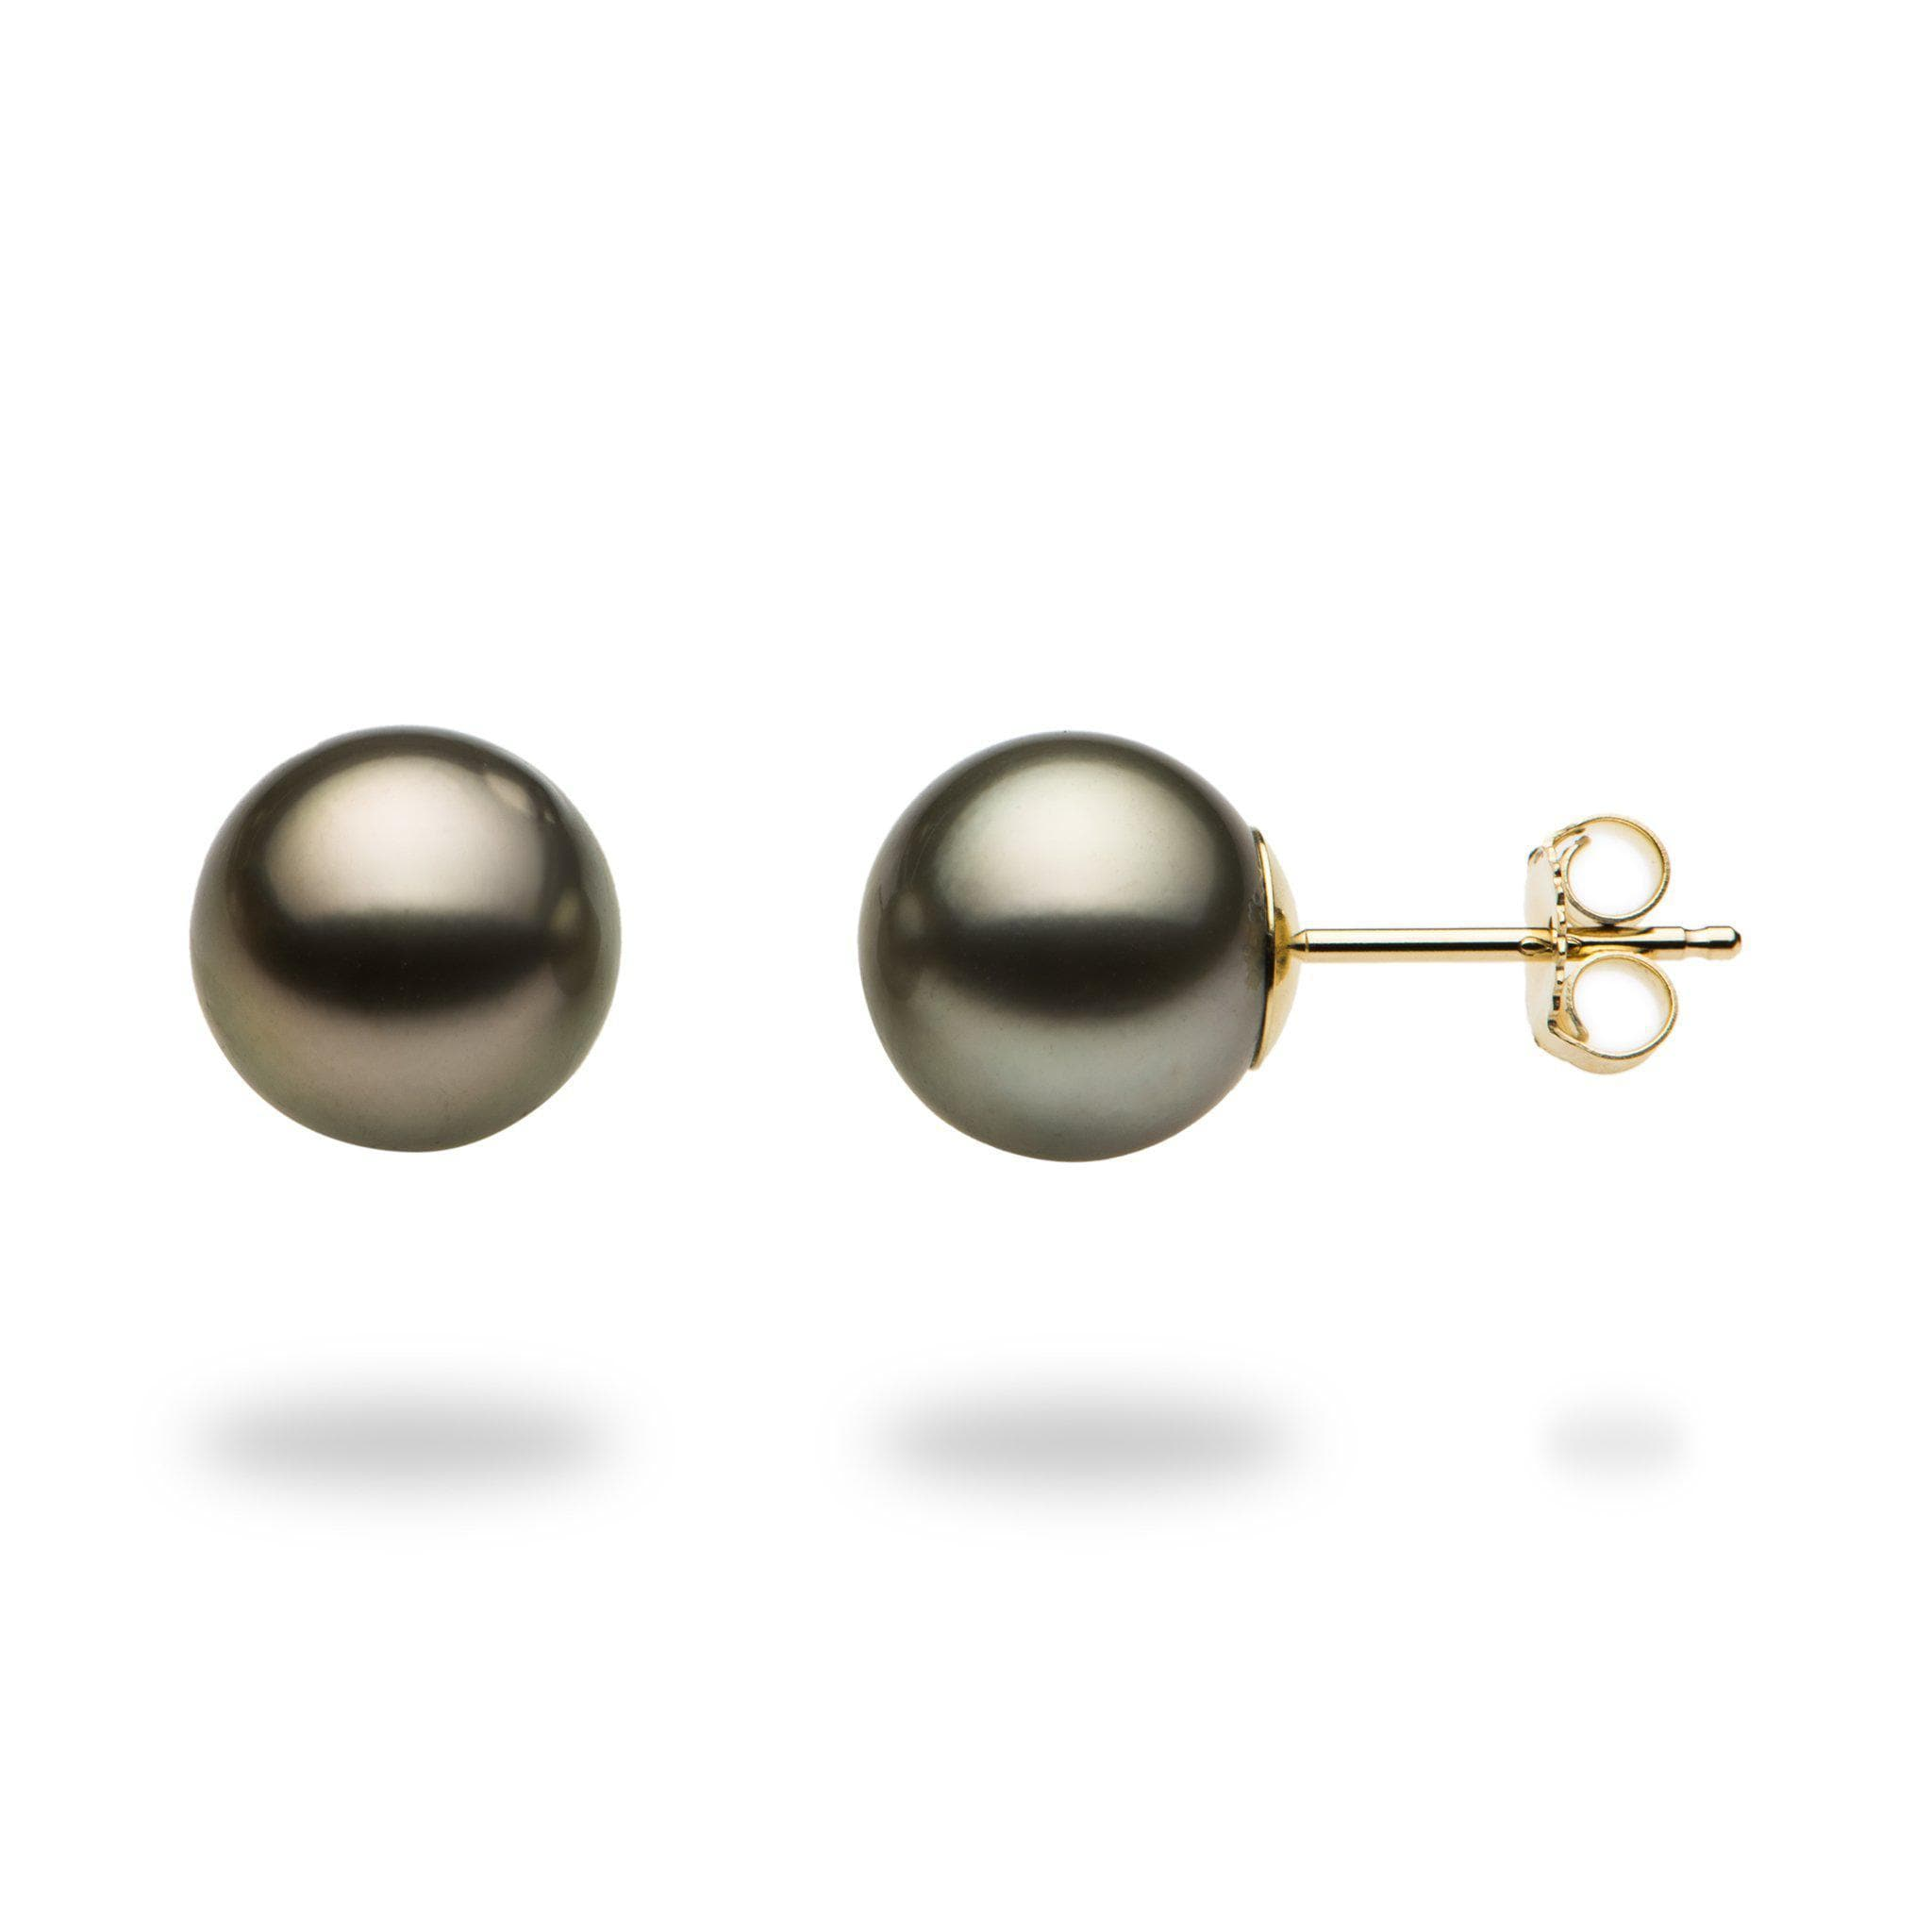 earrings pearl mikimoto real wreath mabe mab the l earclips realreal